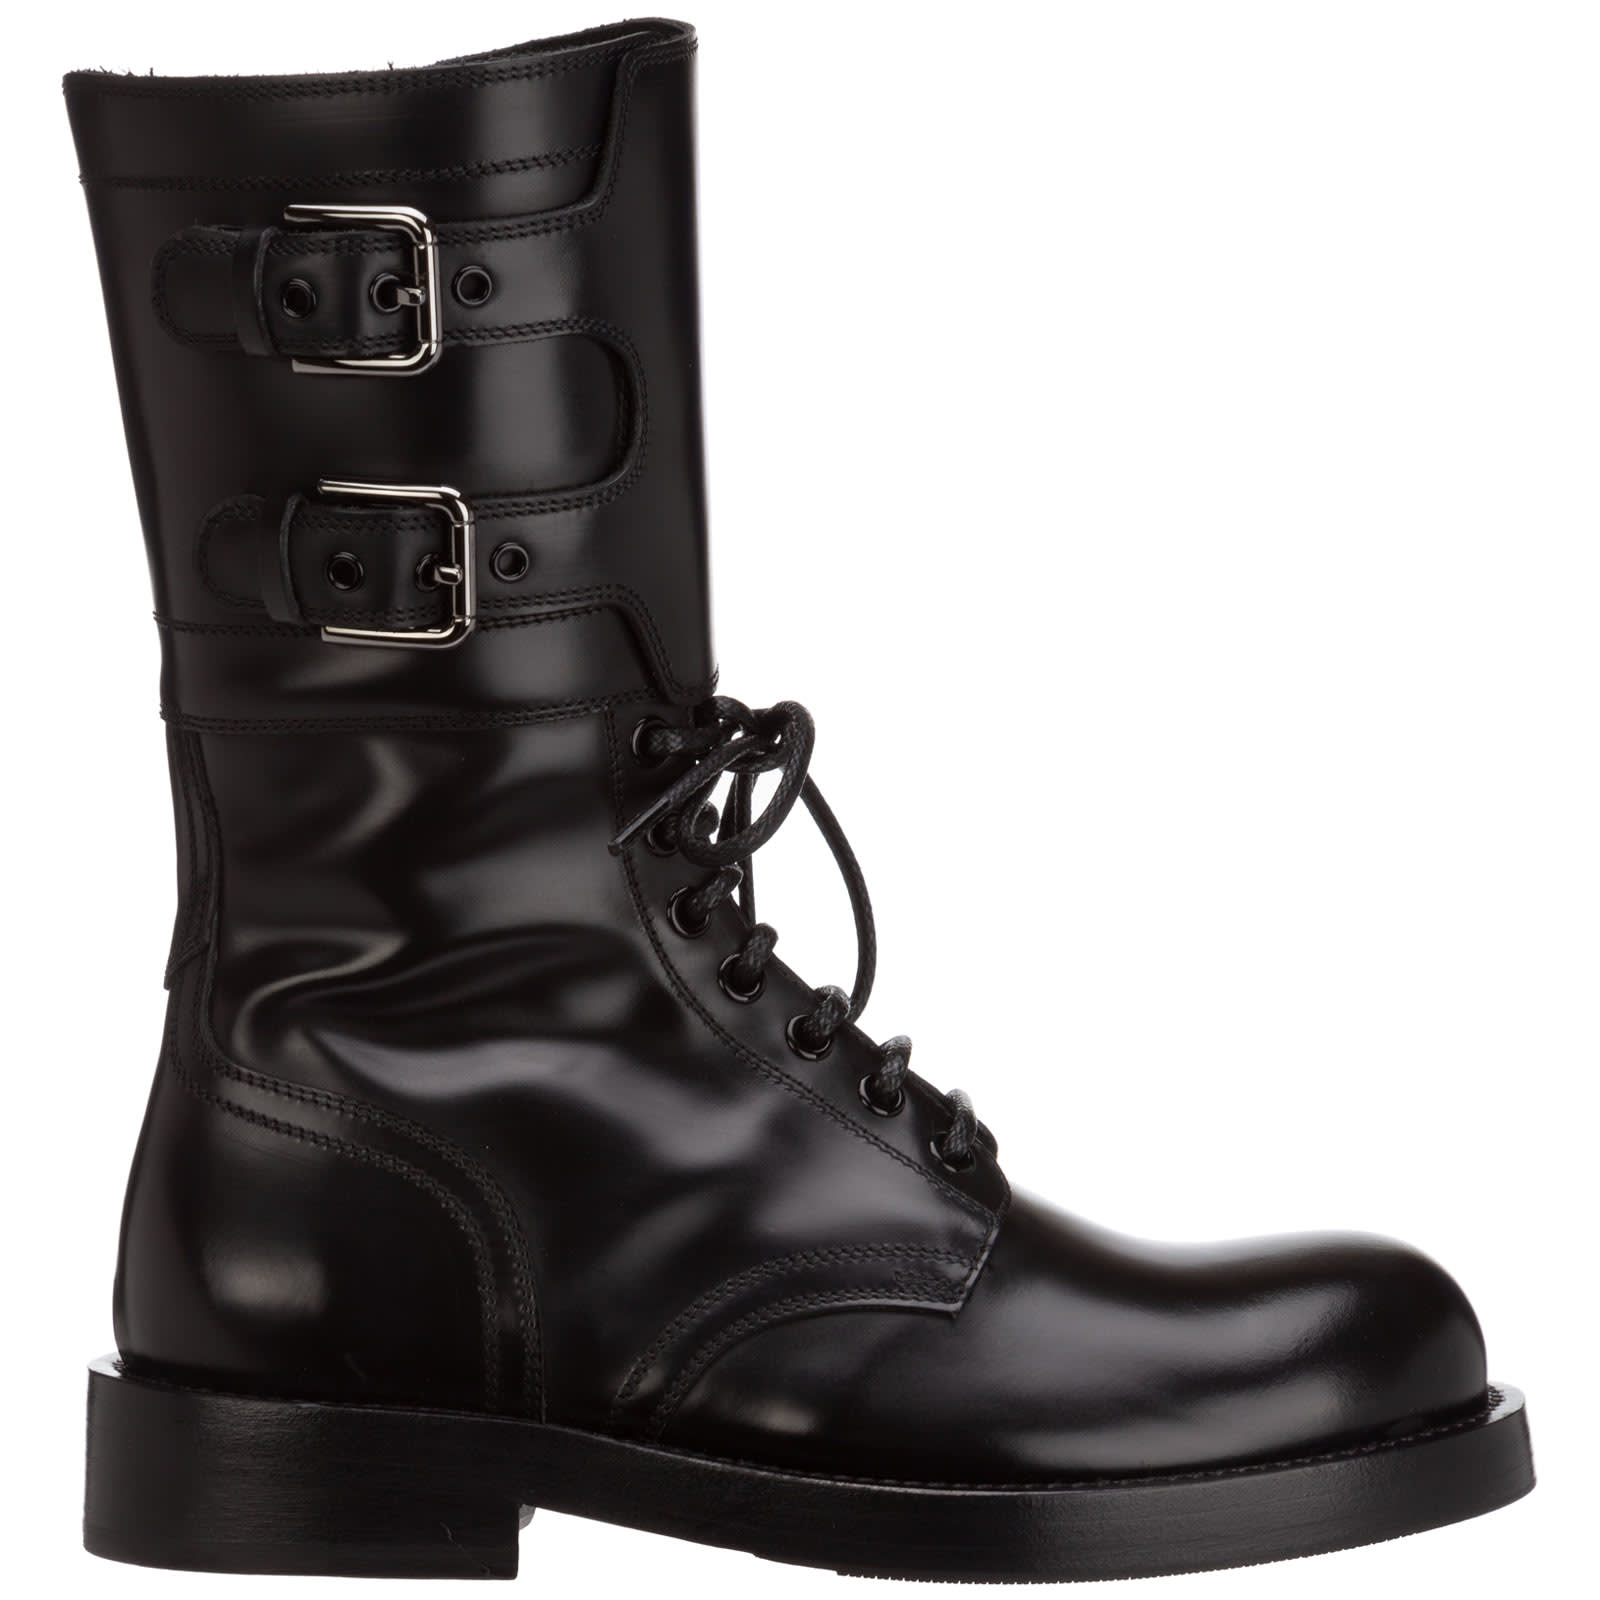 Buy Dolce & Gabbana Dolce & gabbana Ikonik Ankle Boots online, shop Dolce & Gabbana shoes with free shipping